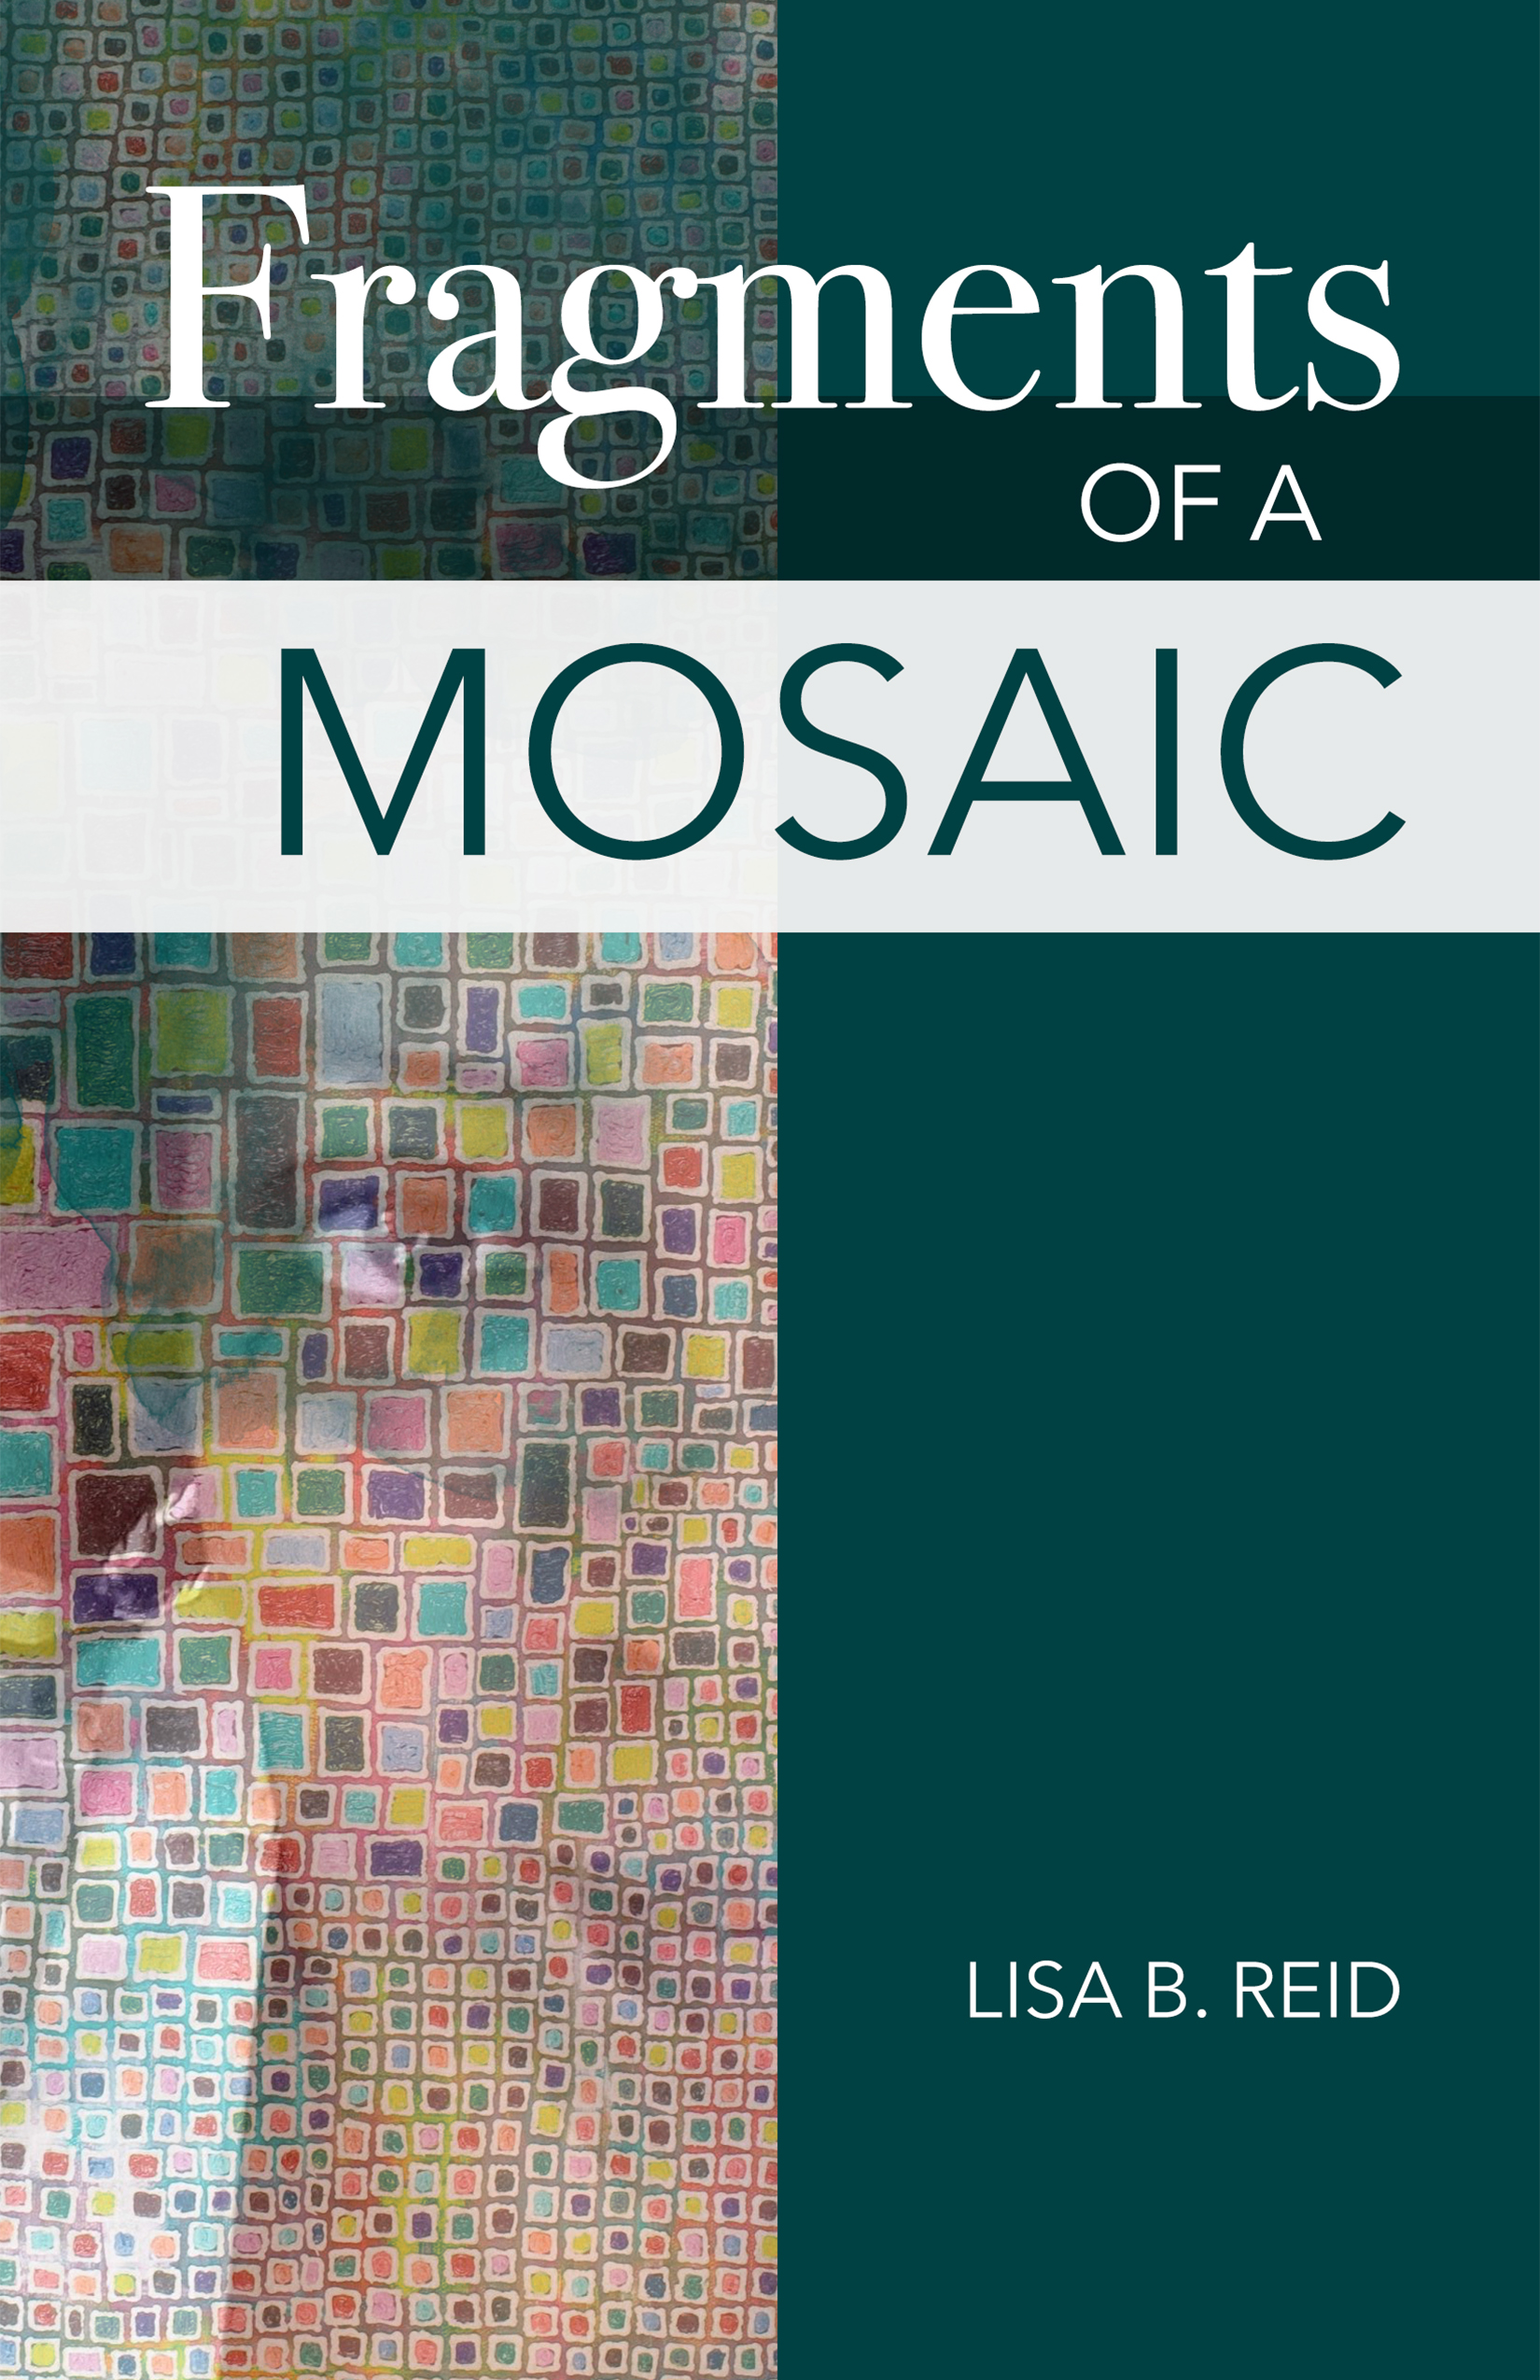 FragmentsMosaic_FRONTcover